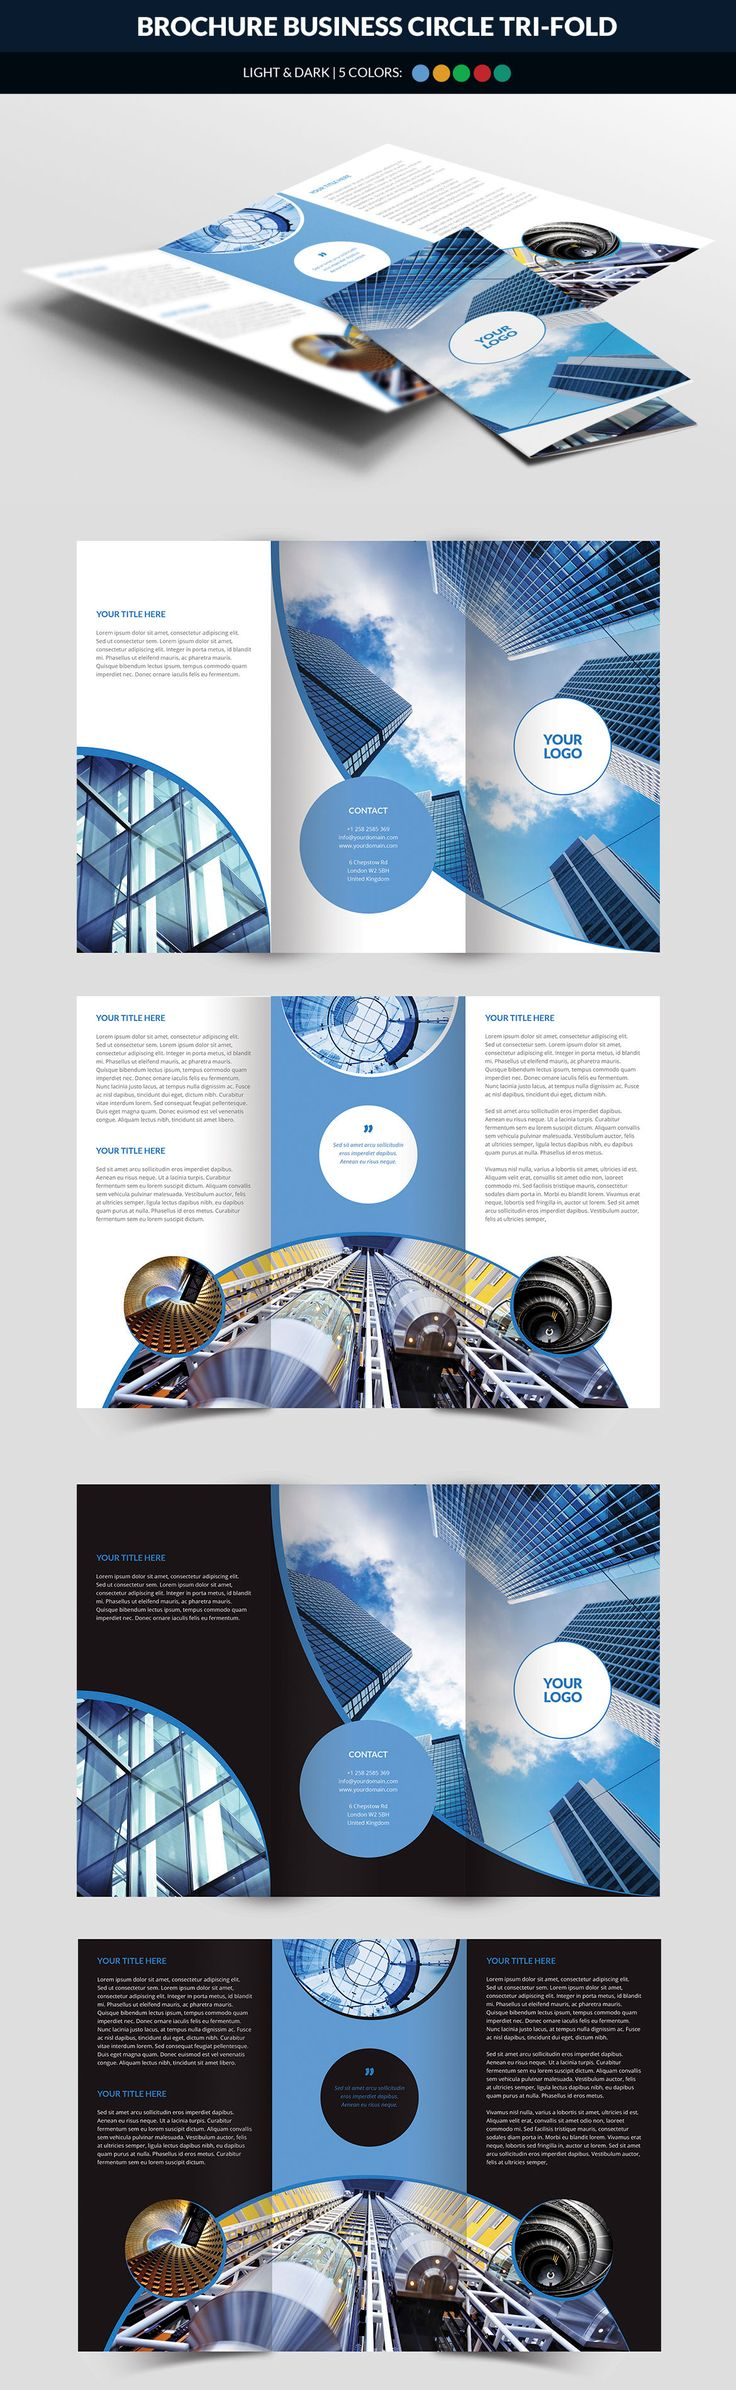 Business Circle Tri Fold Brochure Template PSD